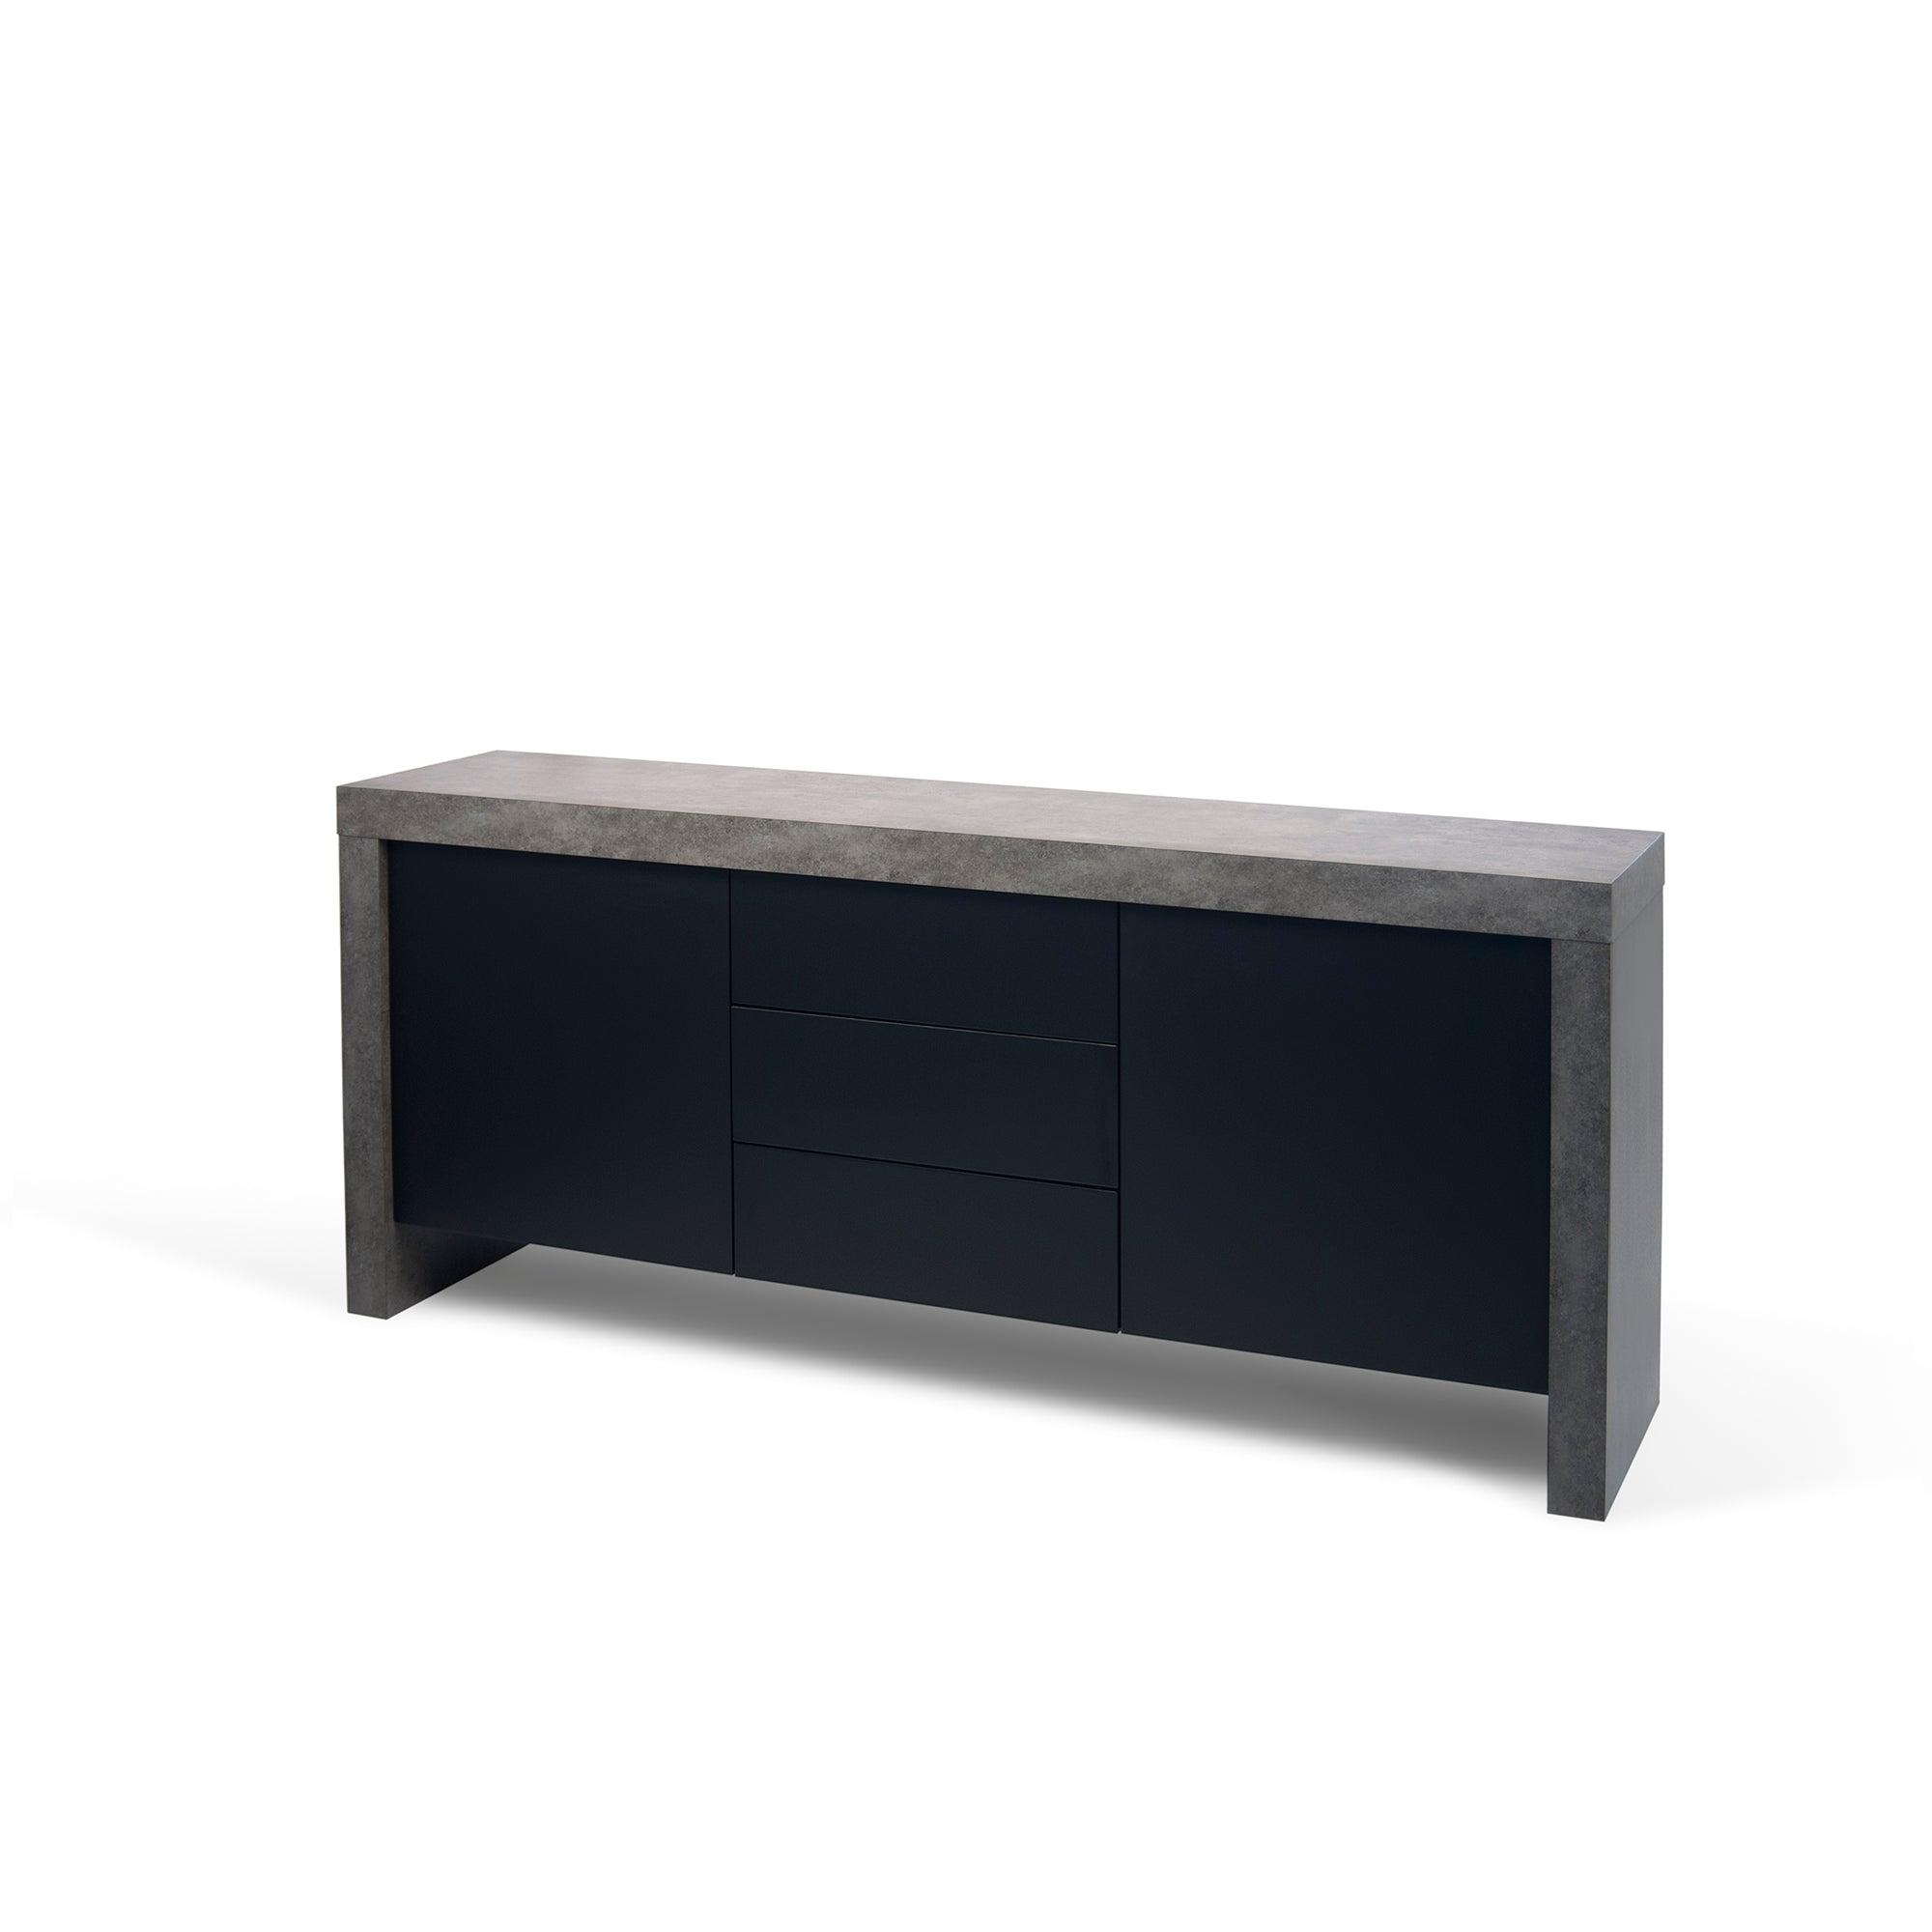 Kobe Sideboard with 2 Doors and 3 Drawers